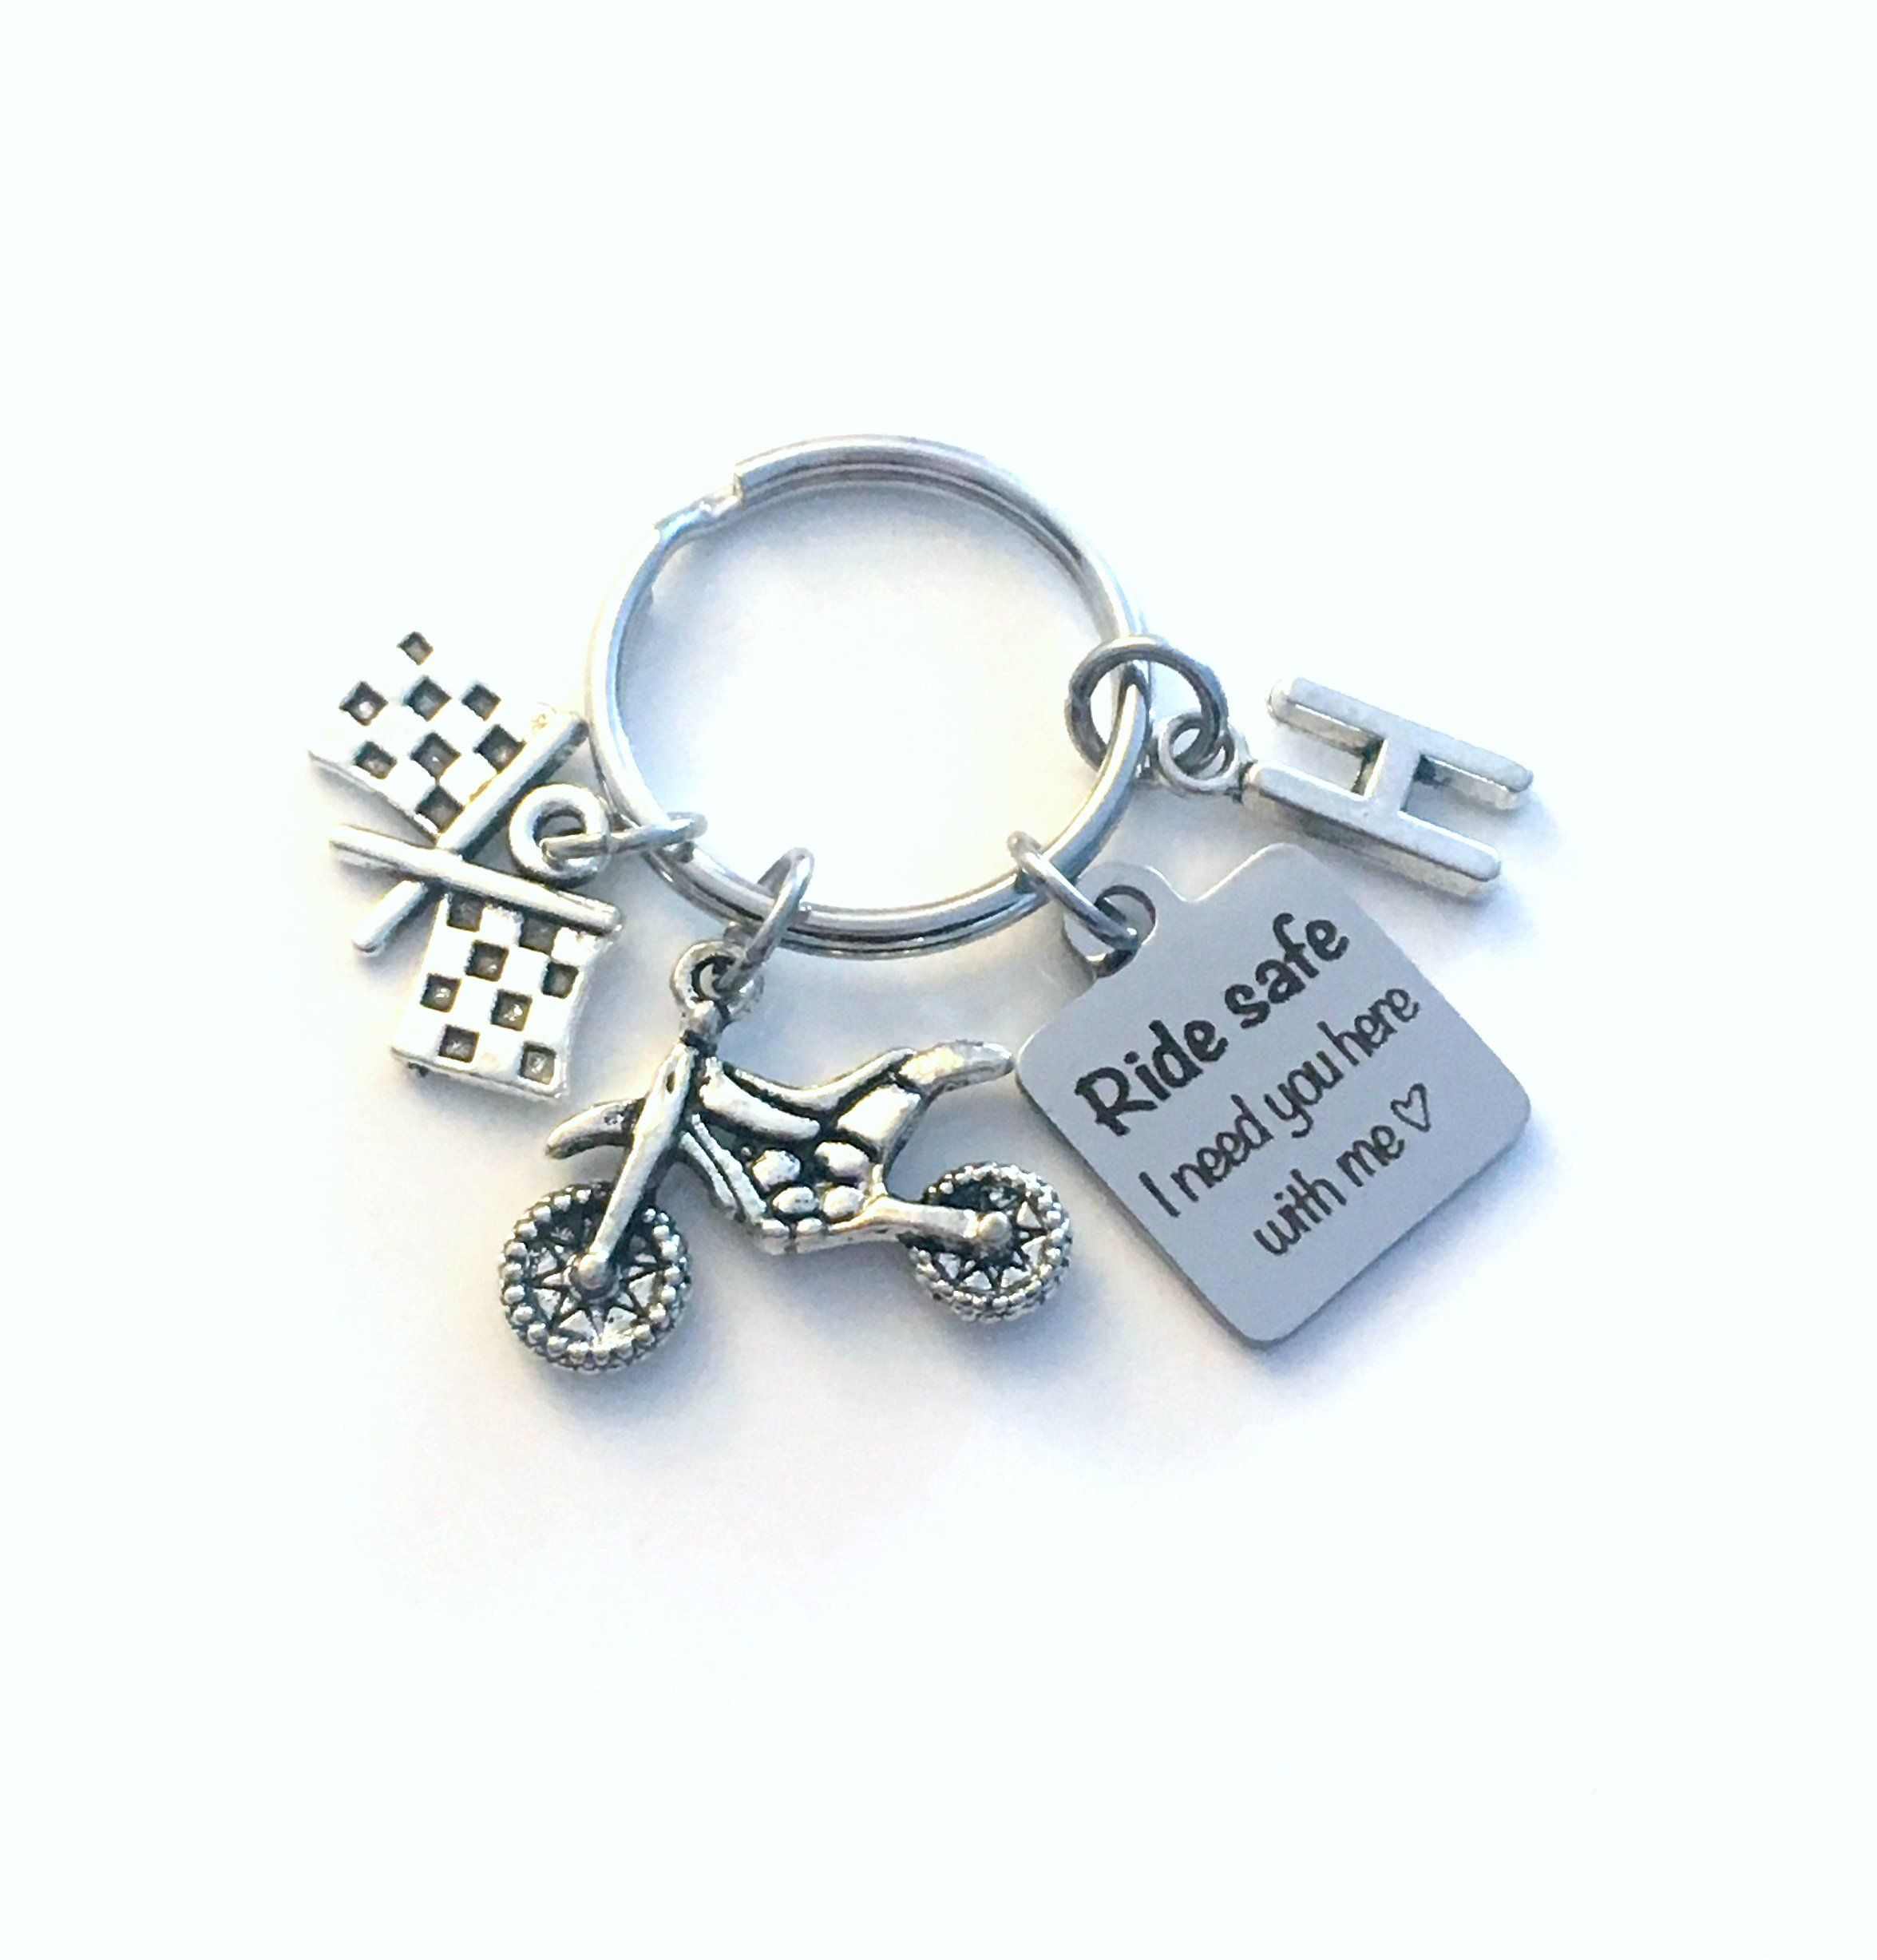 Ride Safe I Need You Here With Me Keychain Racing Key Chain For